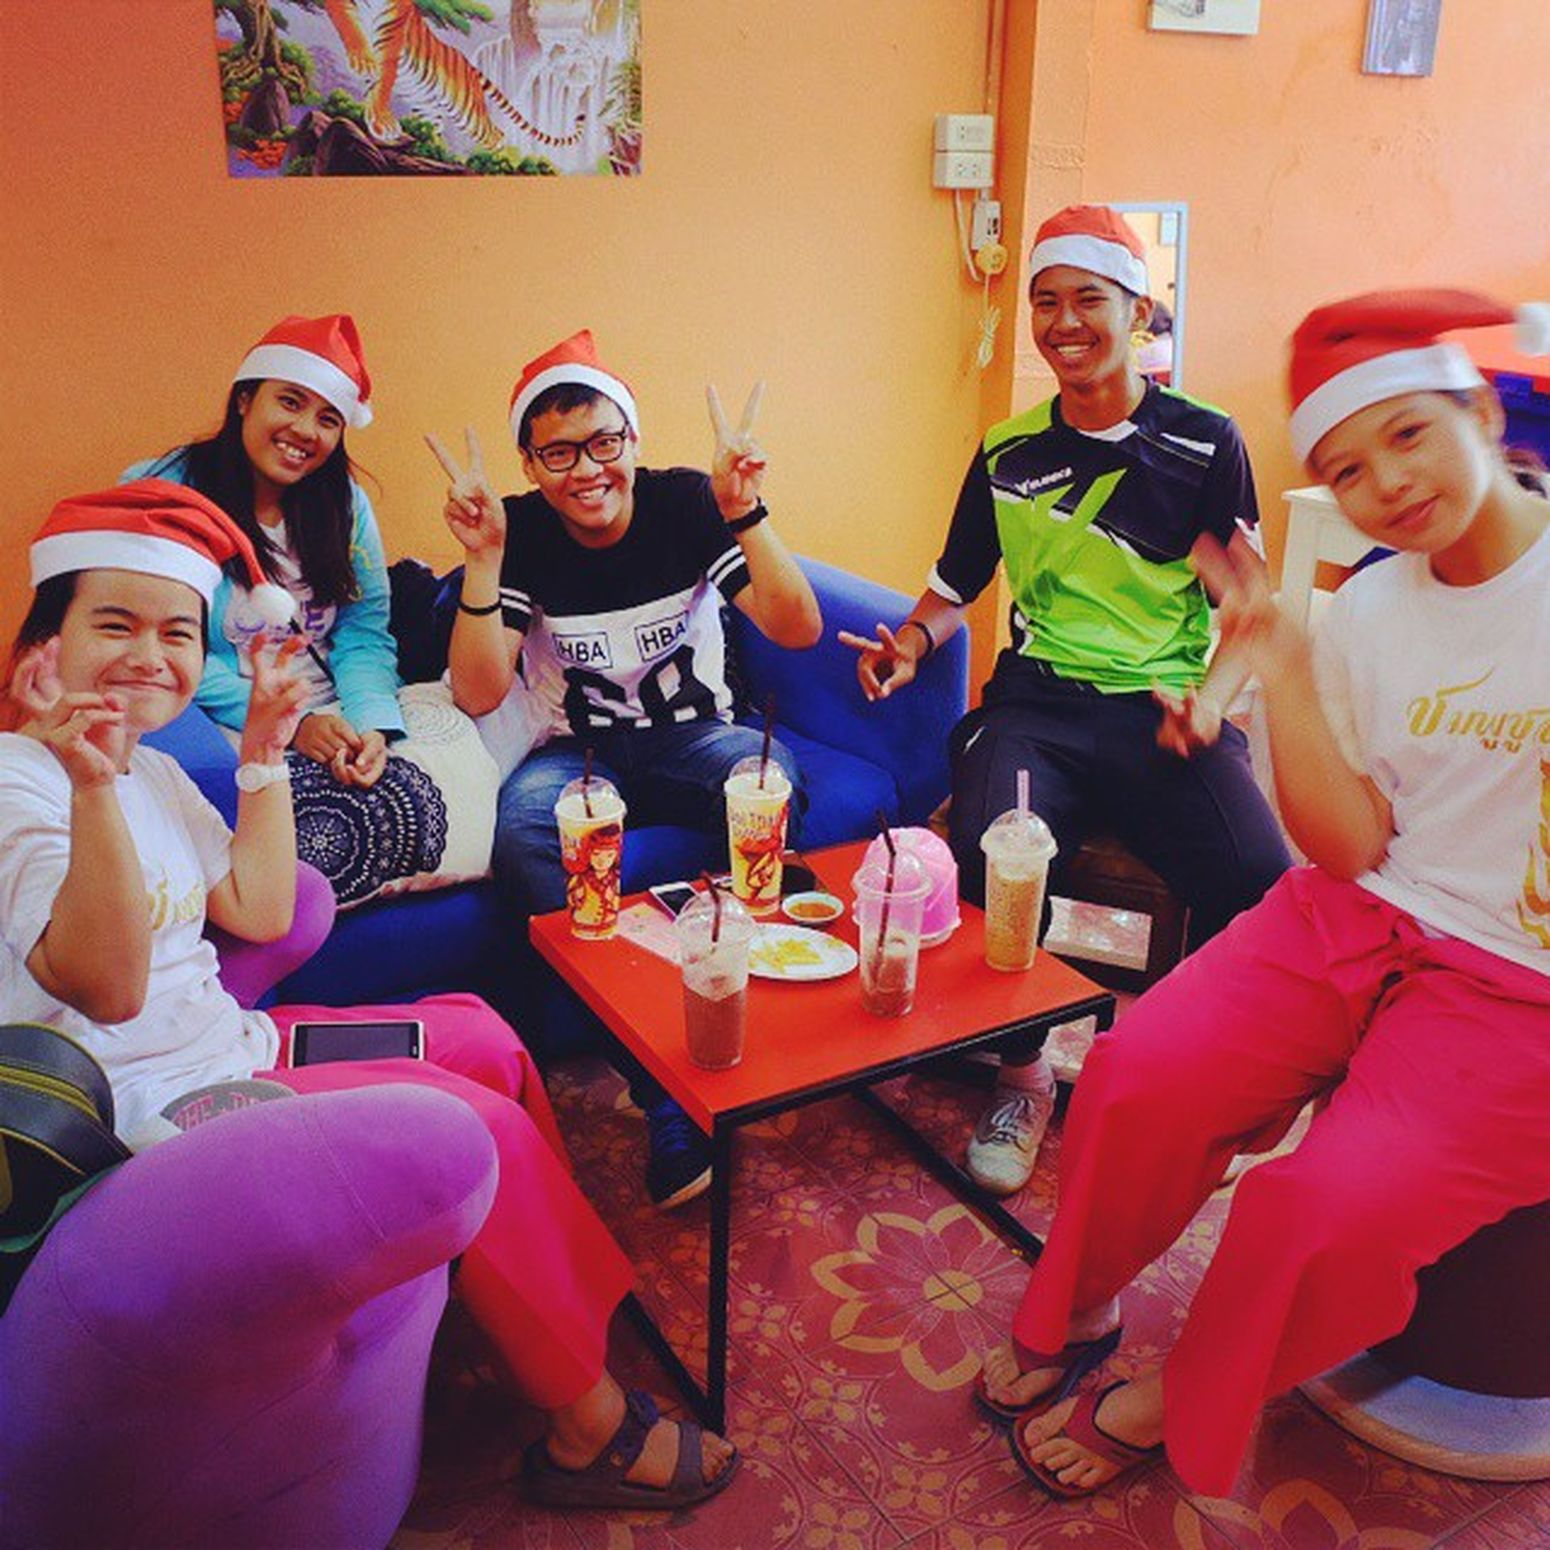 Merry Christmas !! Catcha laterrrr byee *big hug* Lateforchristmas Yasothon Withmykids MerryChristmas Backtoschool Happynewyear2015